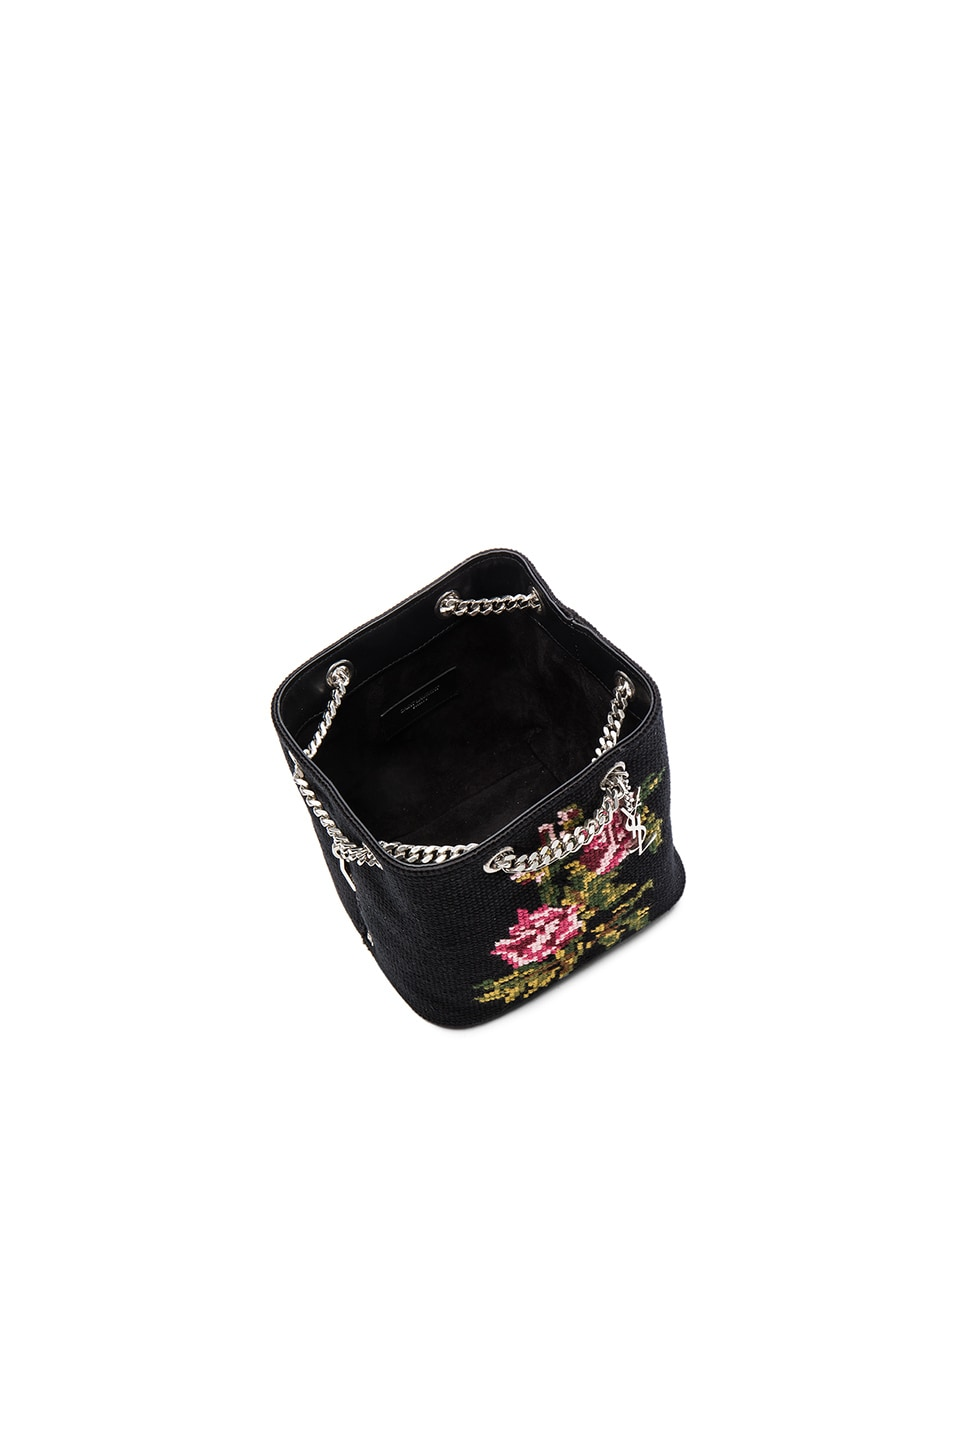 Image 5 of Saint Laurent Baby Floral Embroidery Emmanuelle Bucket Bag in  Black   Multi 3442d26558fab